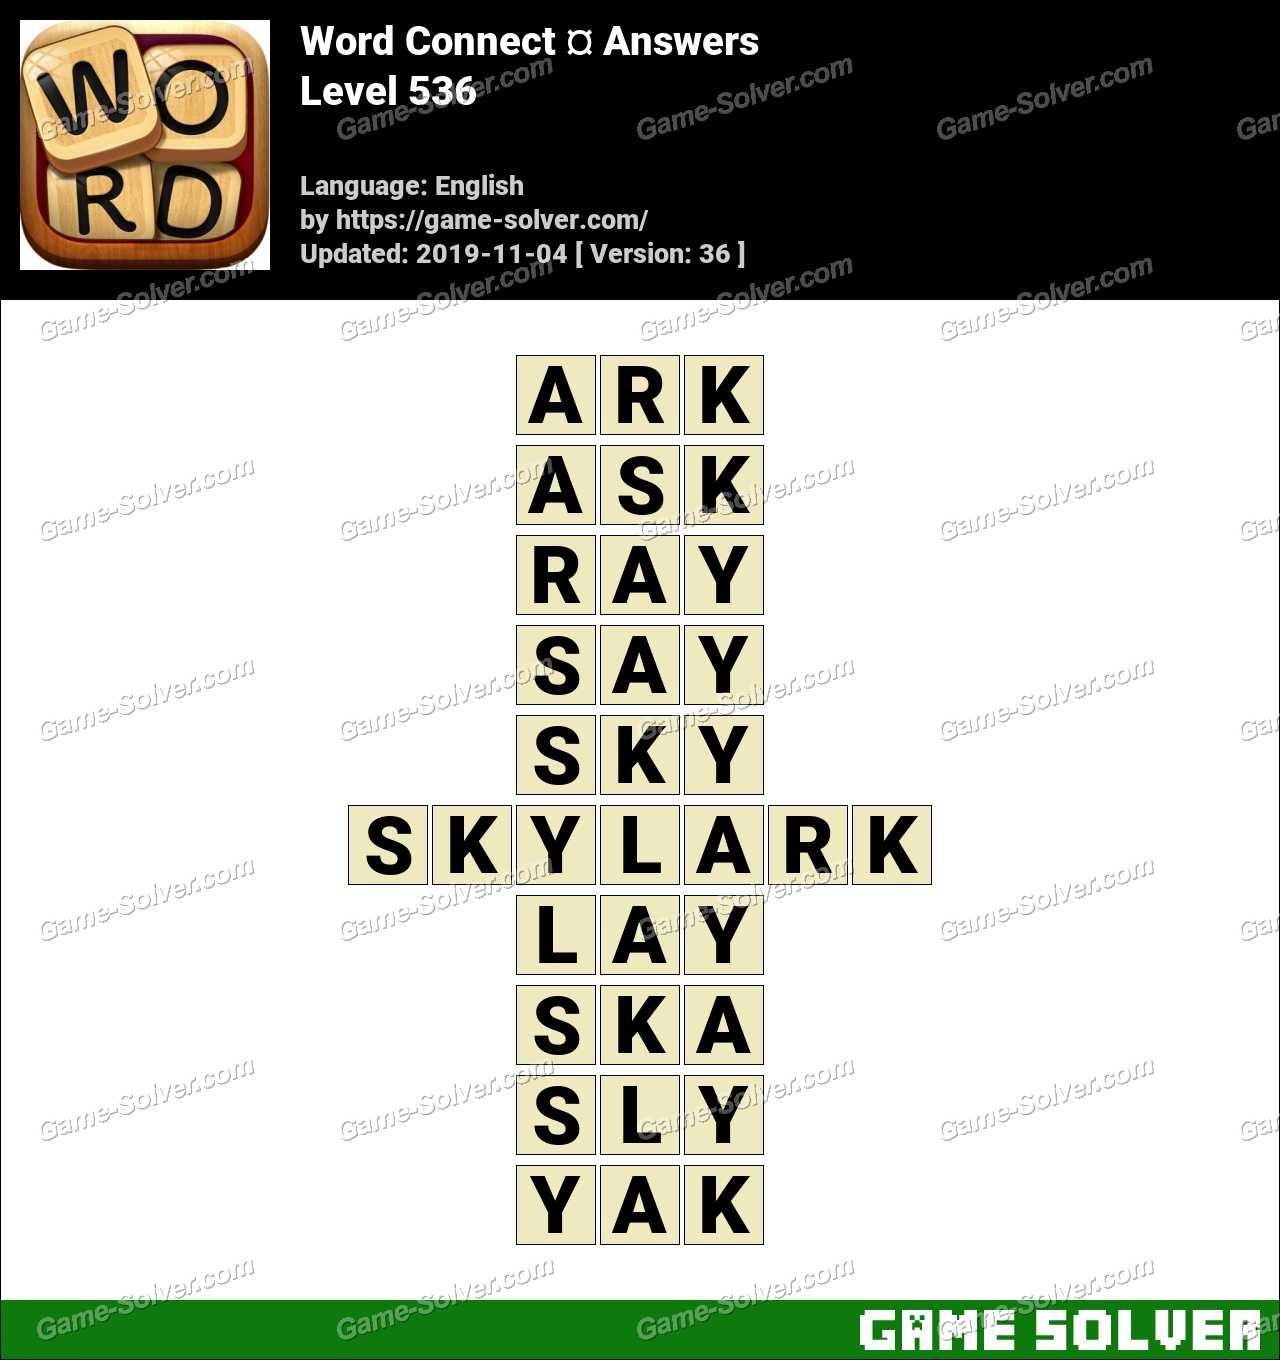 Word Connect Level 536 Answers